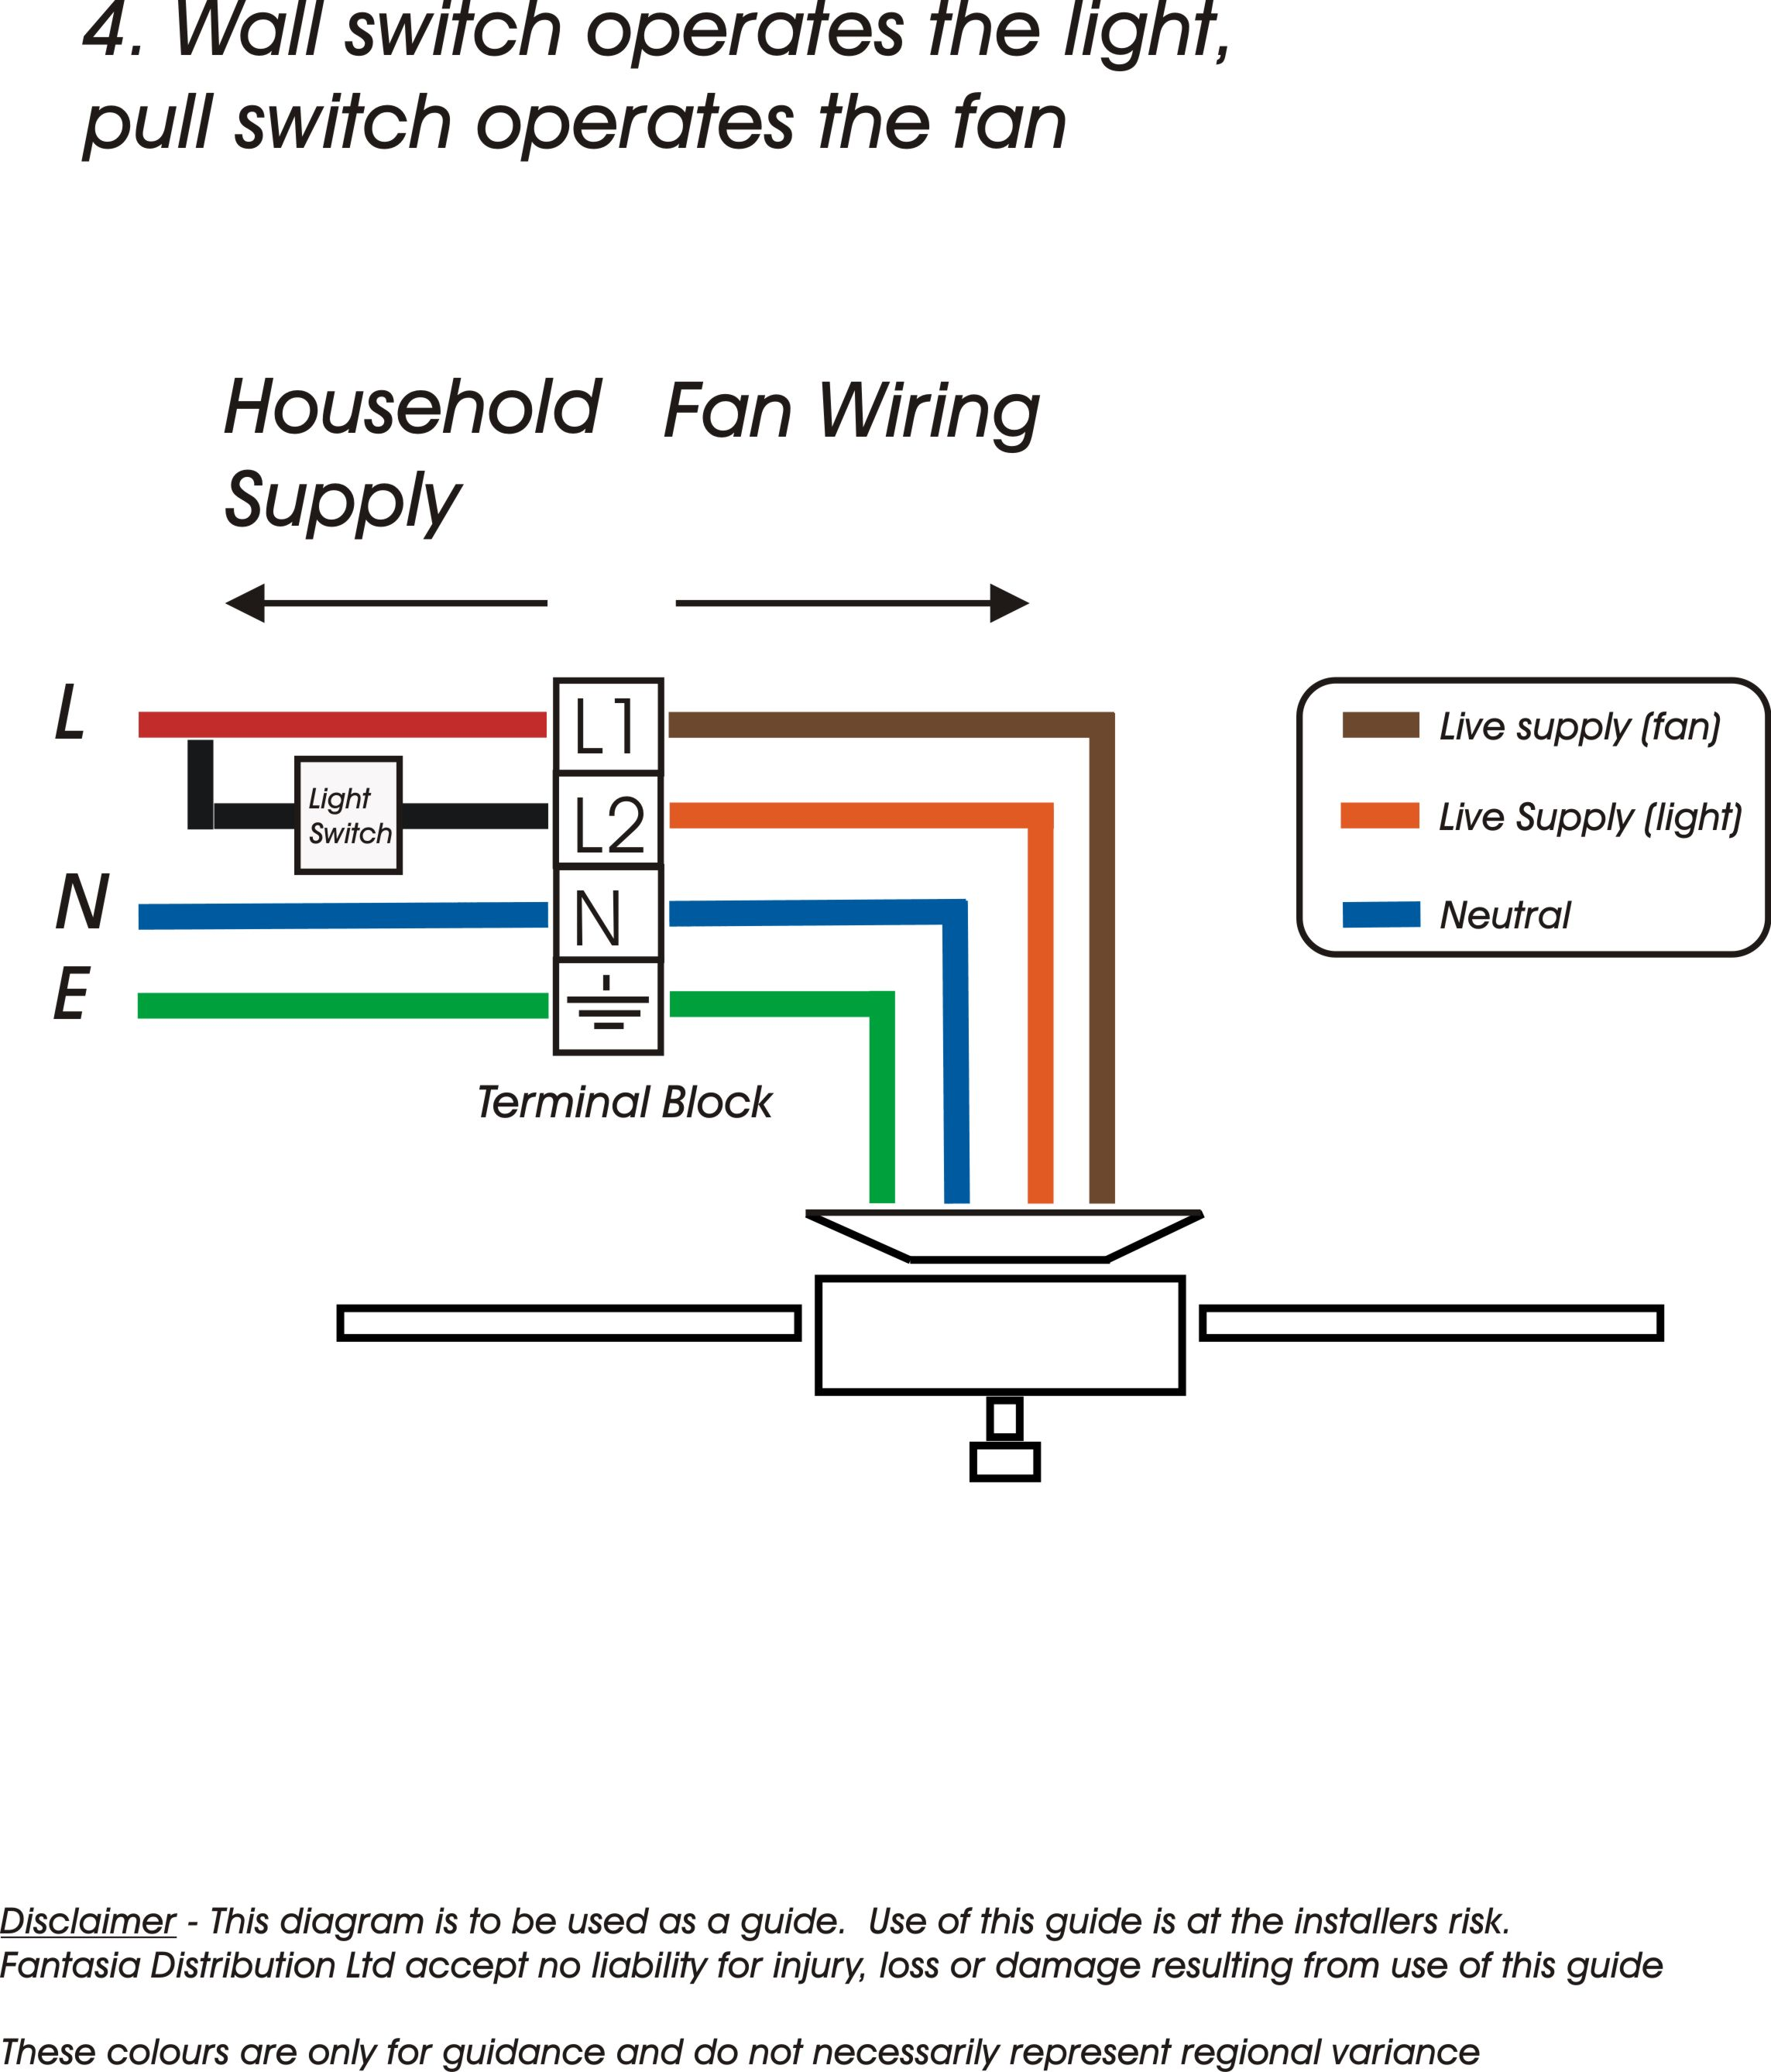 replacing light switch pull cord hostingrq com ceiling fan switch replacement home decoration ideas 2287 x 2676